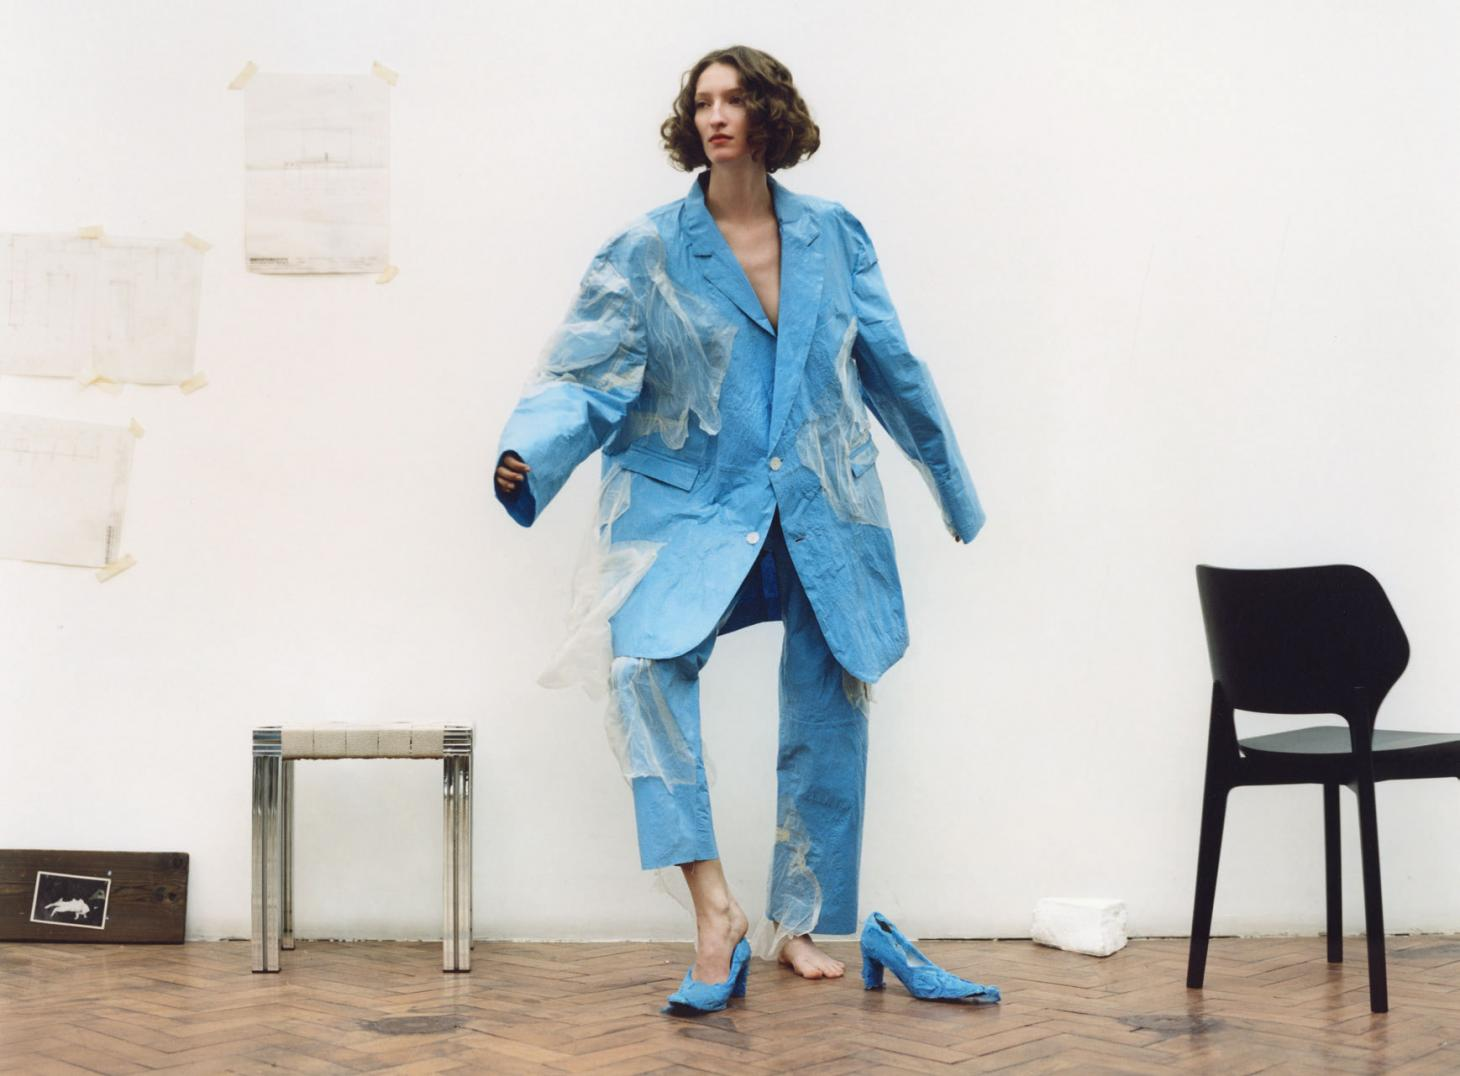 Woman with curly hair stands in a blue plastic suit with blue court heels